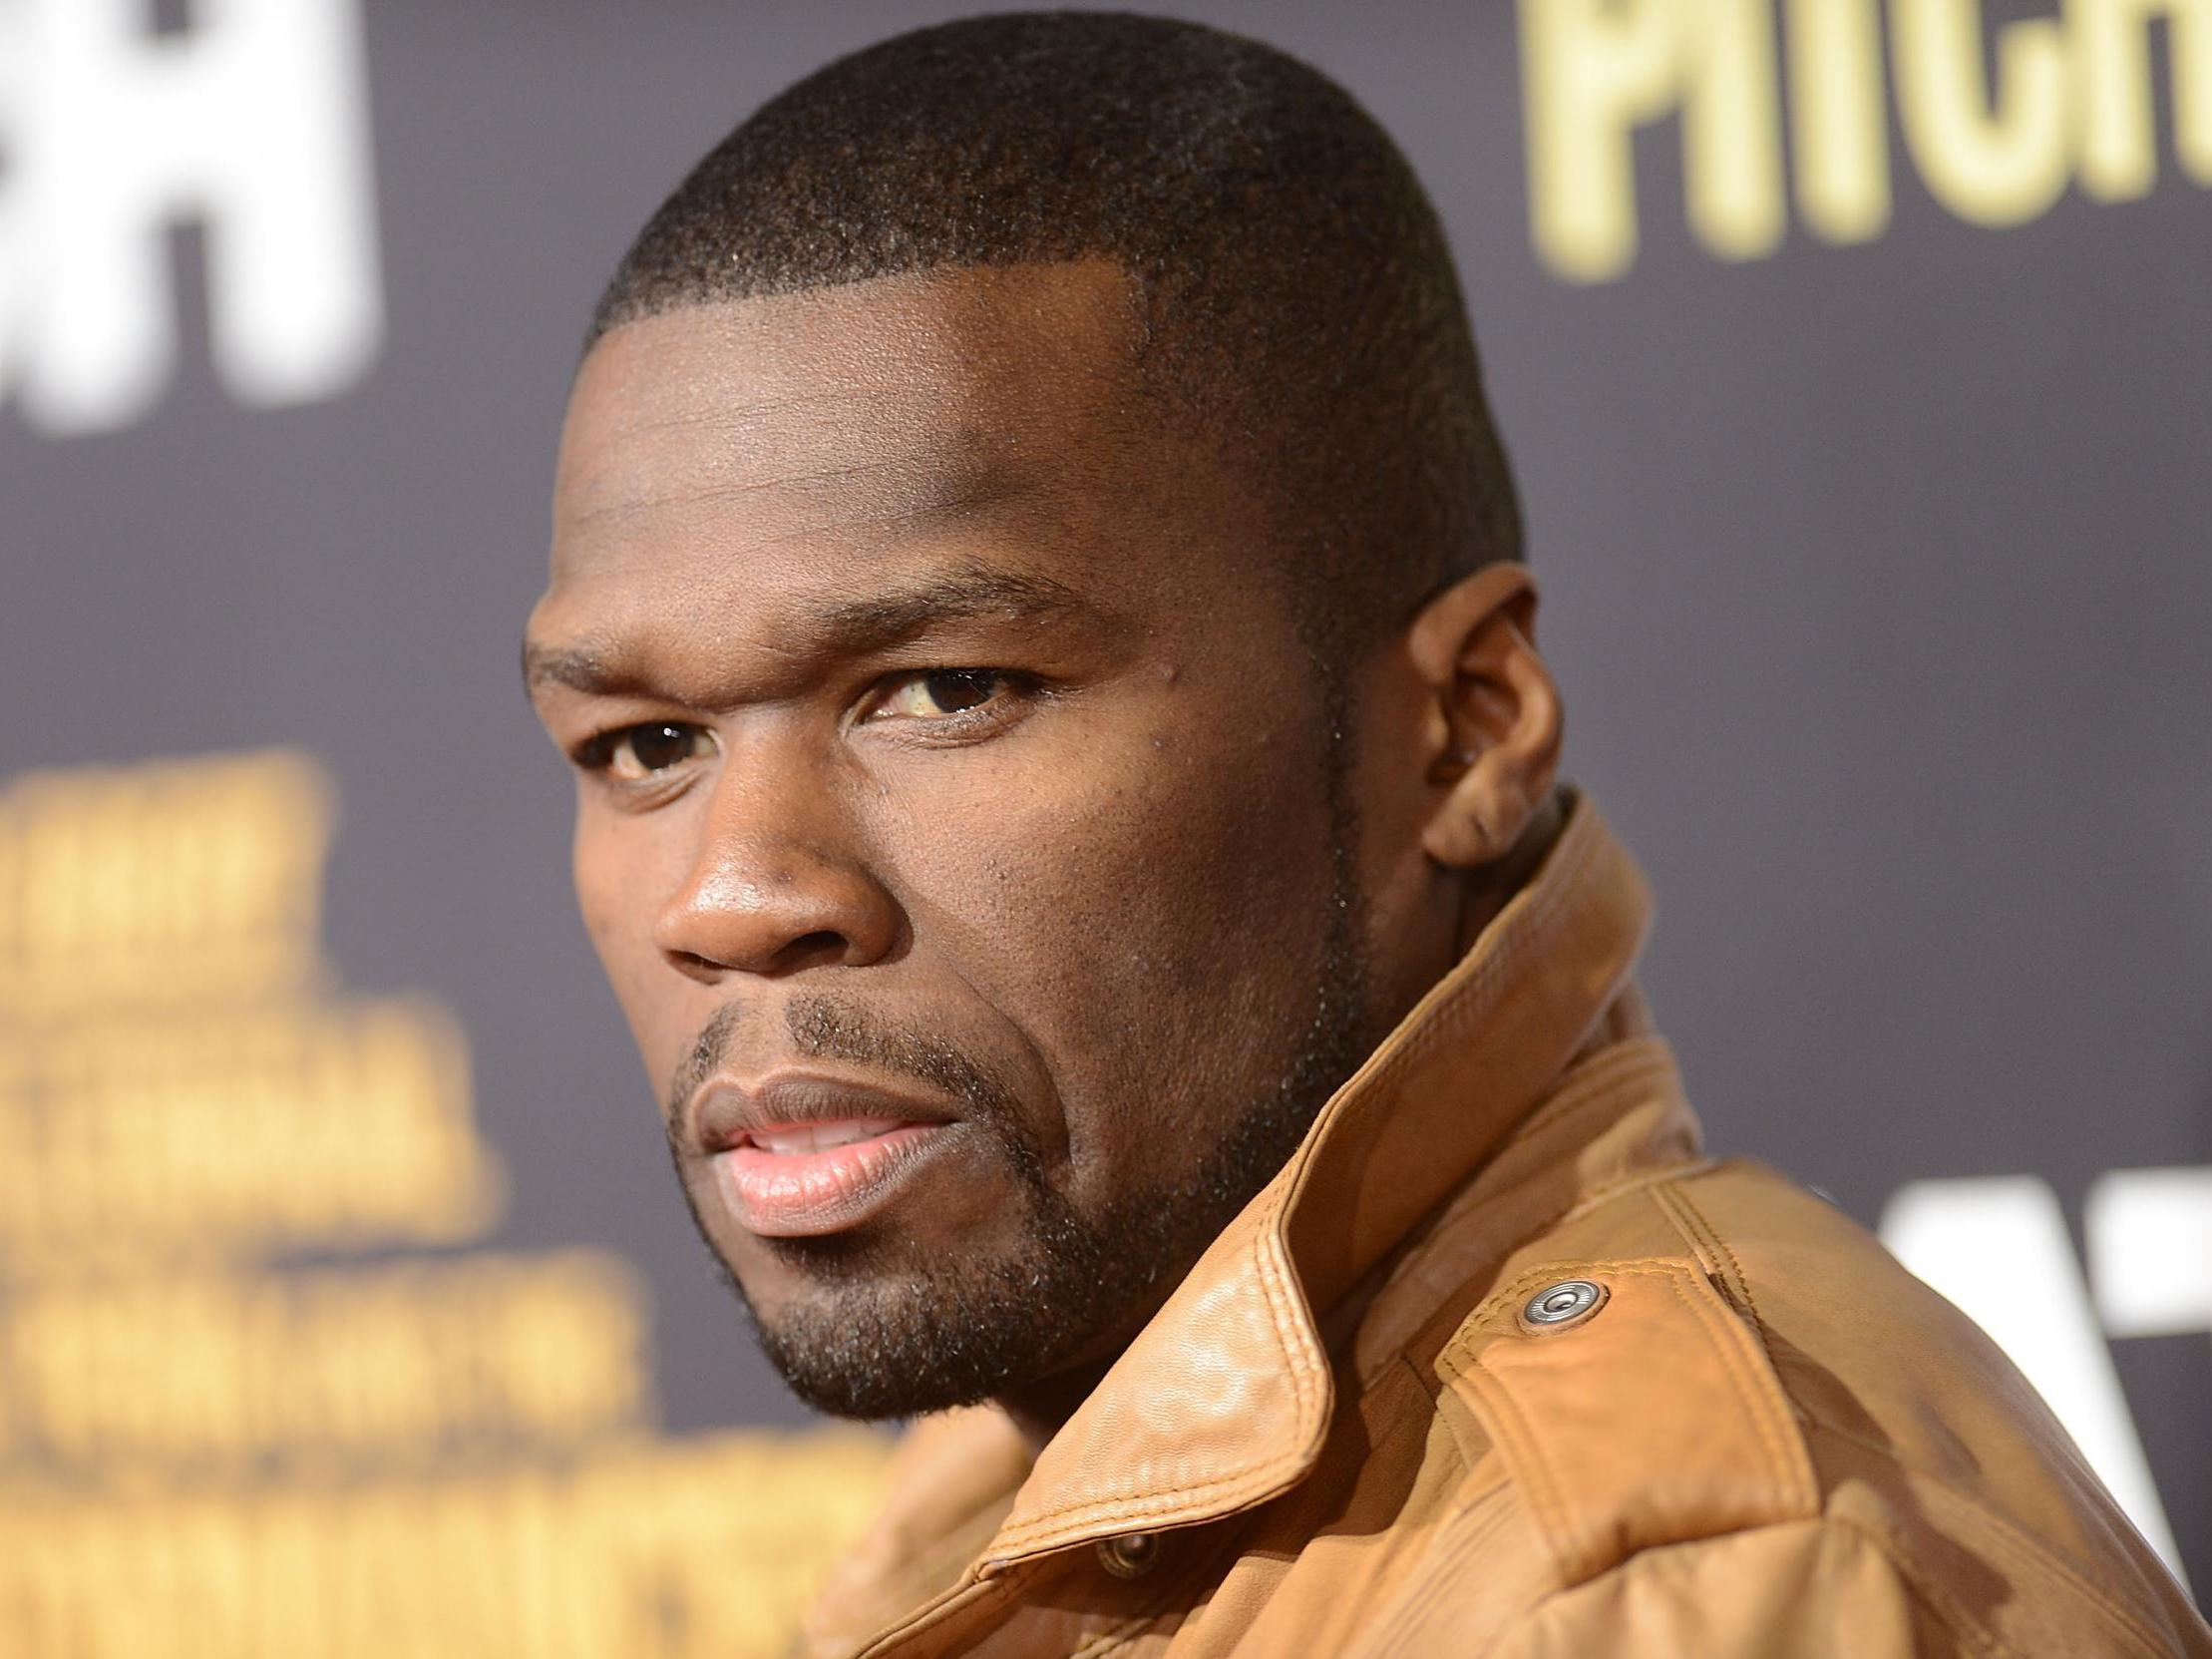 50 Cent - latest news, breaking stories and comment - The